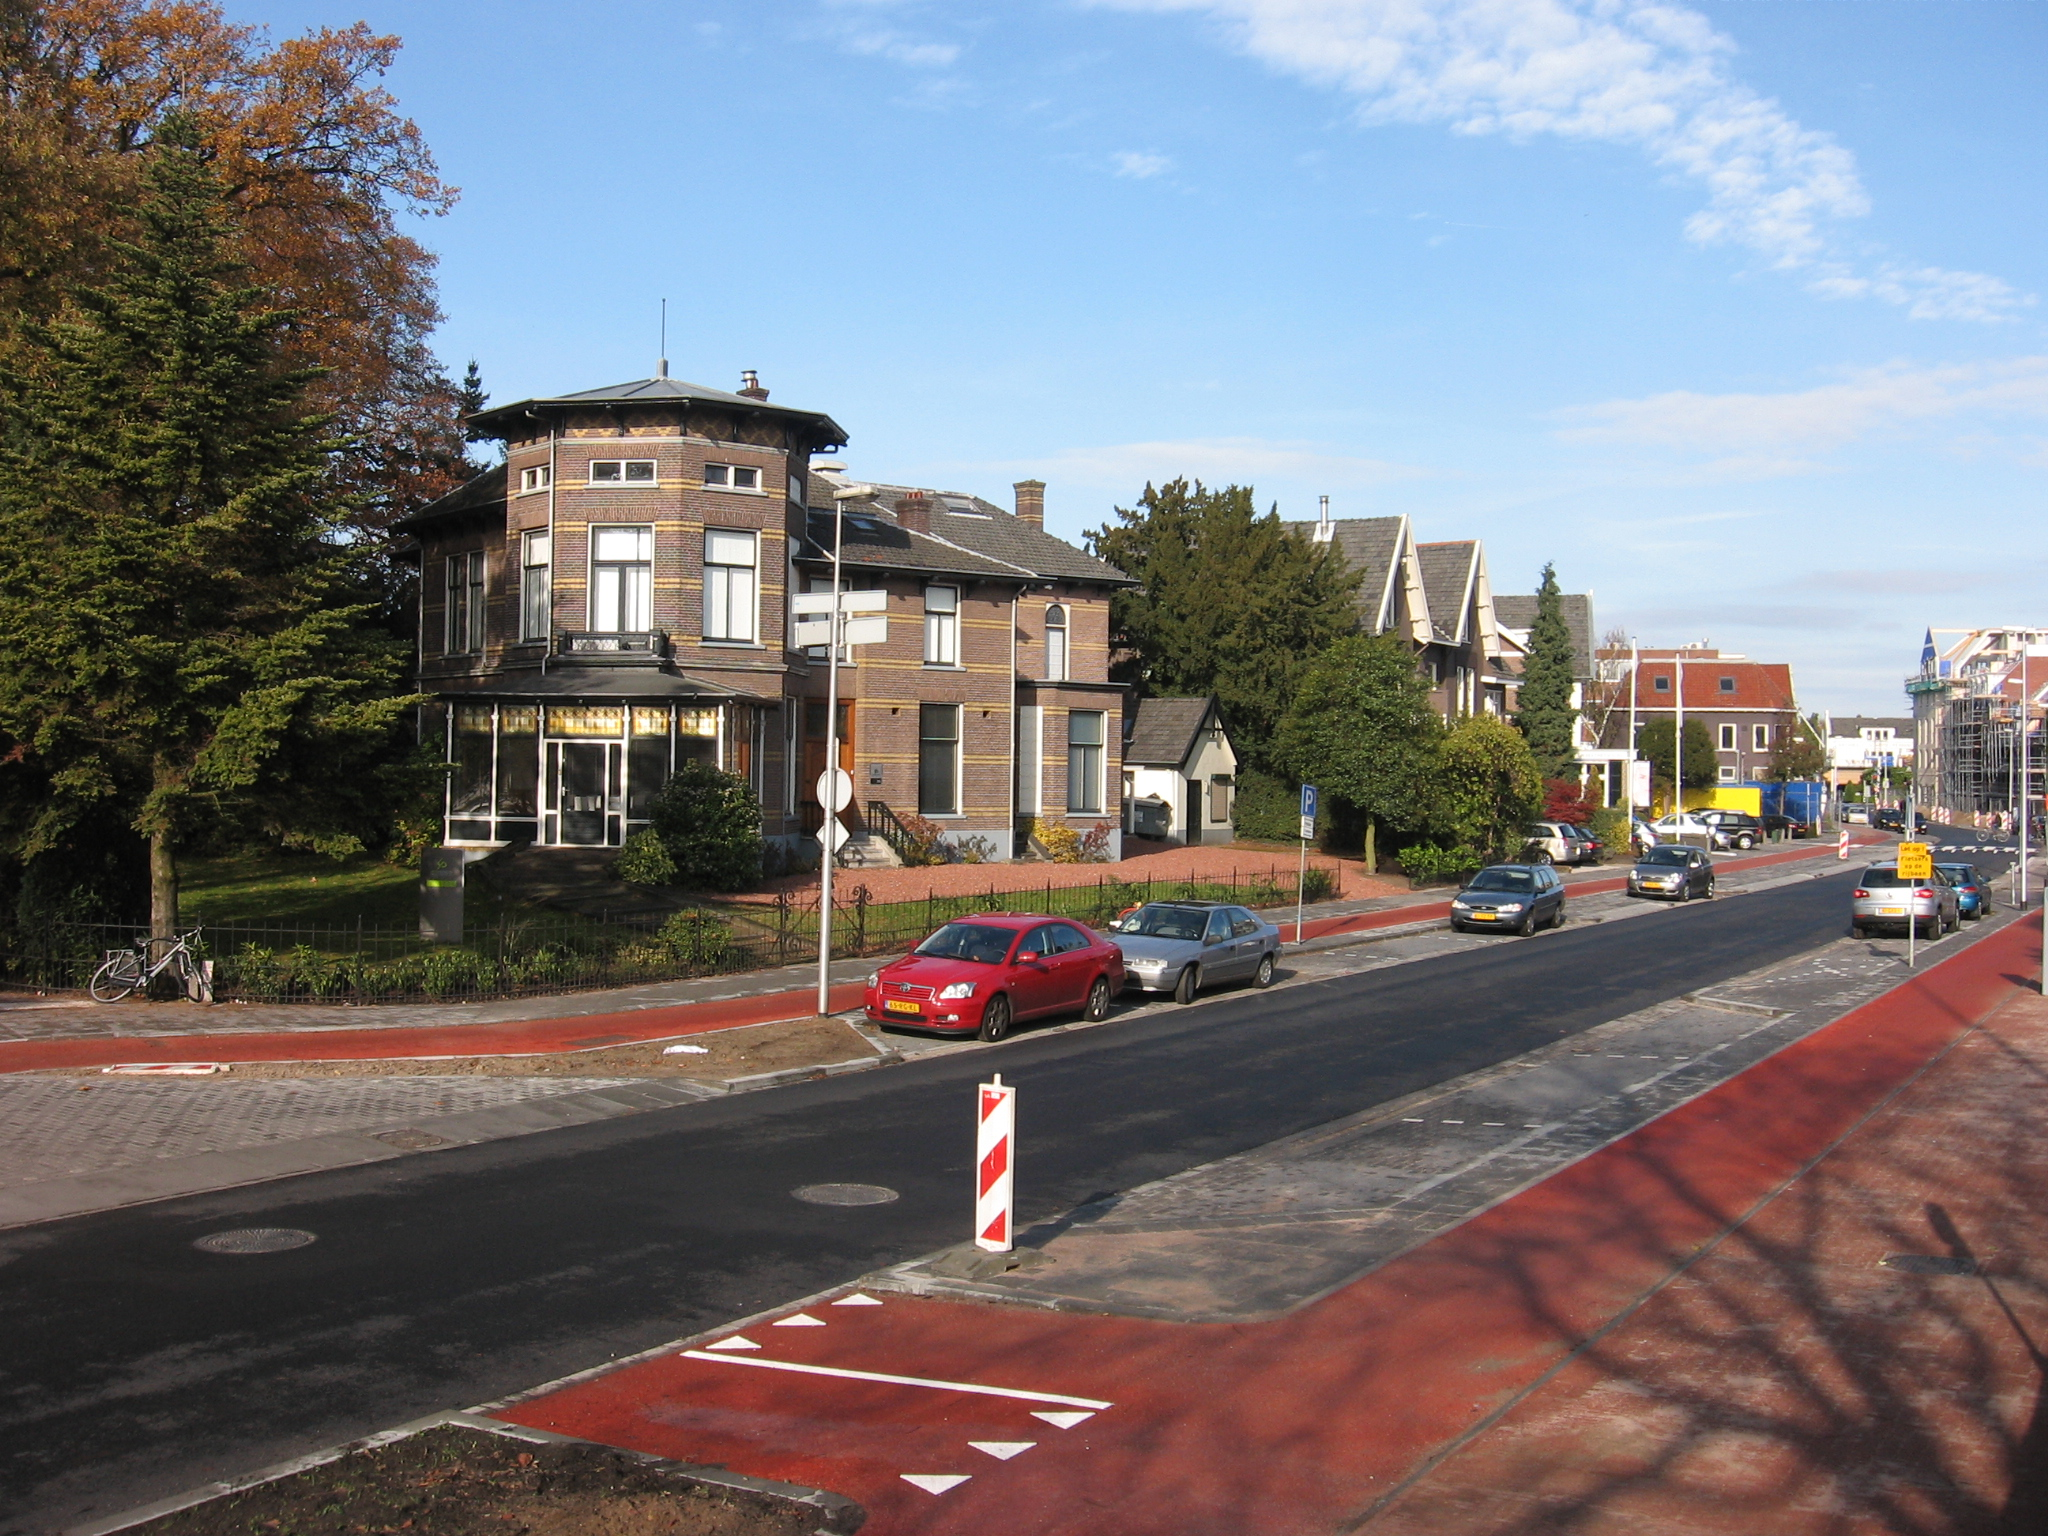 Bussum Netherlands  city images : Brinklaan Bussum 2008 Wikipedia, the free encyclopedia